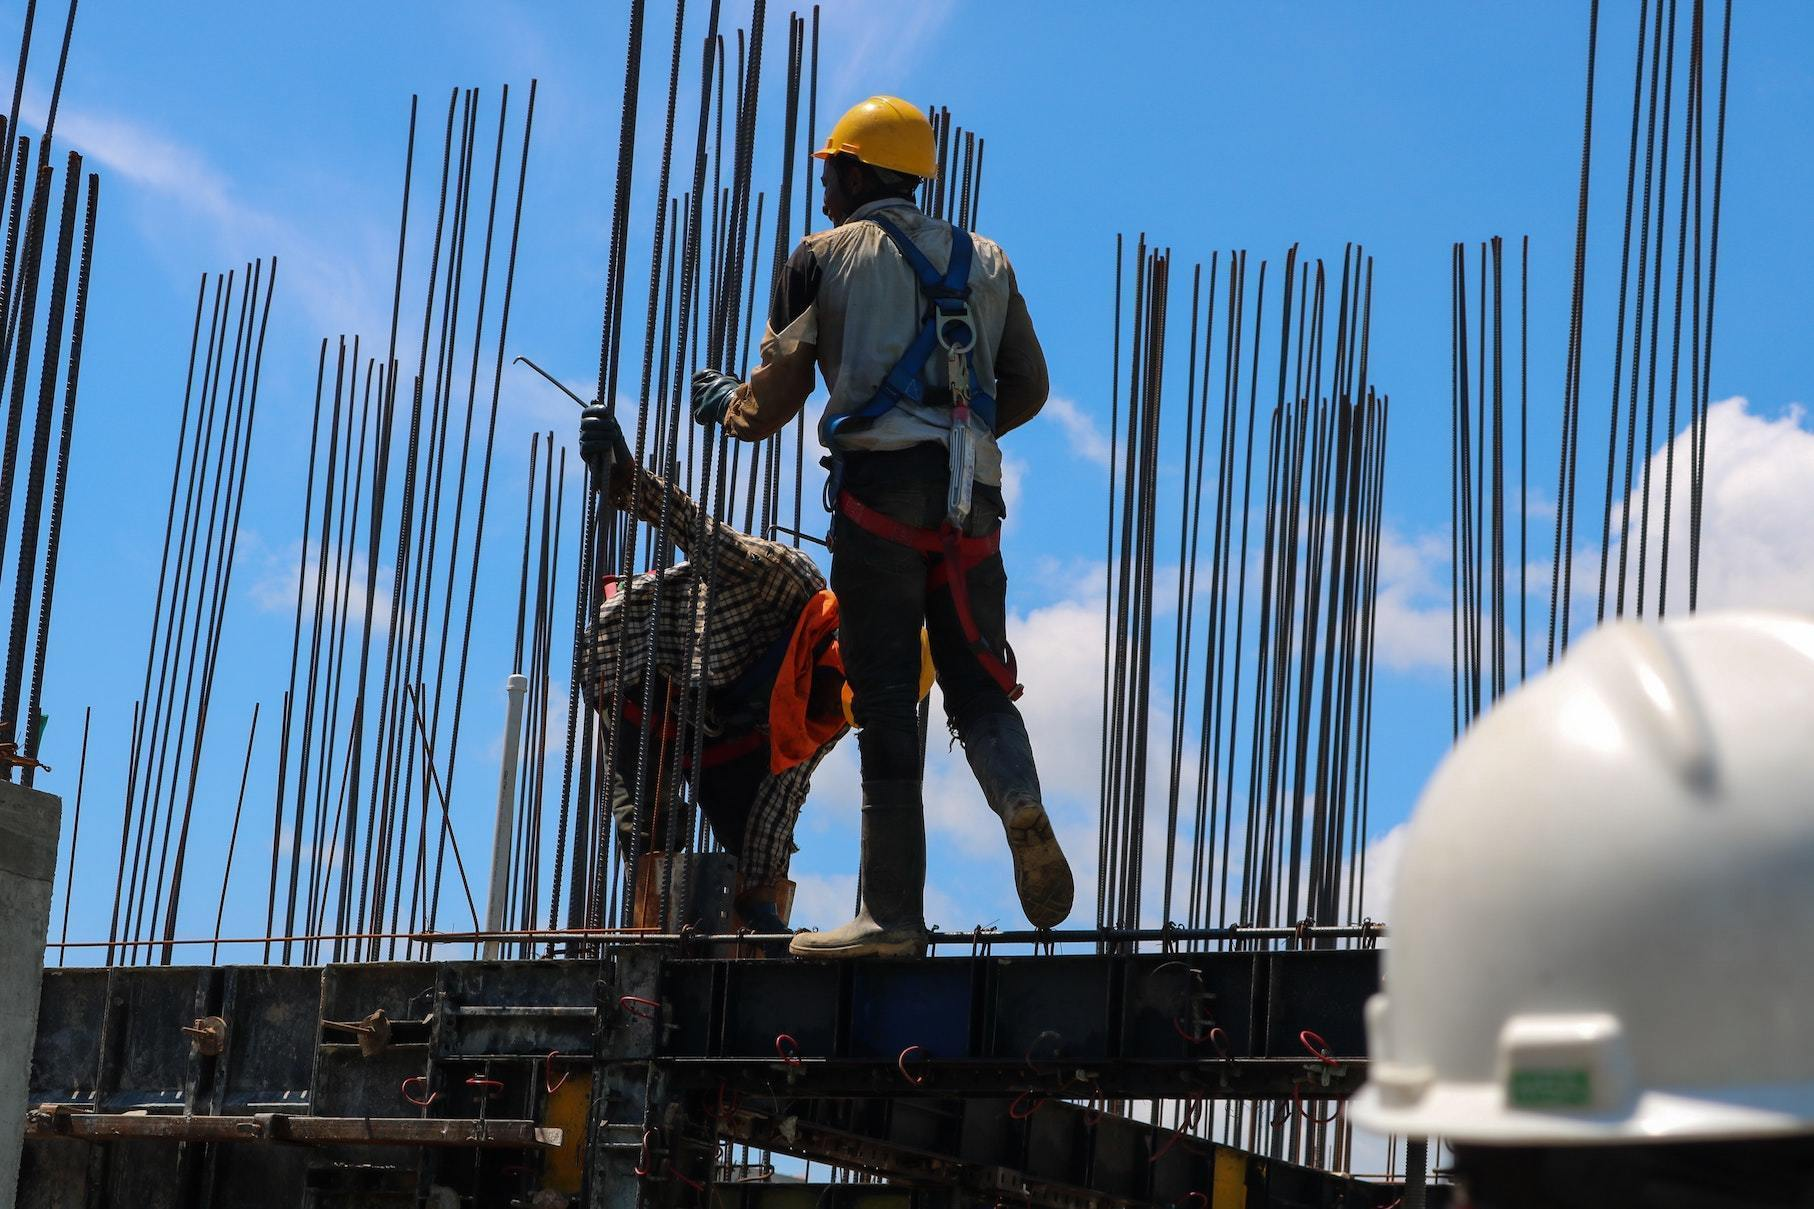 【Tokyo】 Scaffold Builder at Construction Sites | Great Company Atmosphere